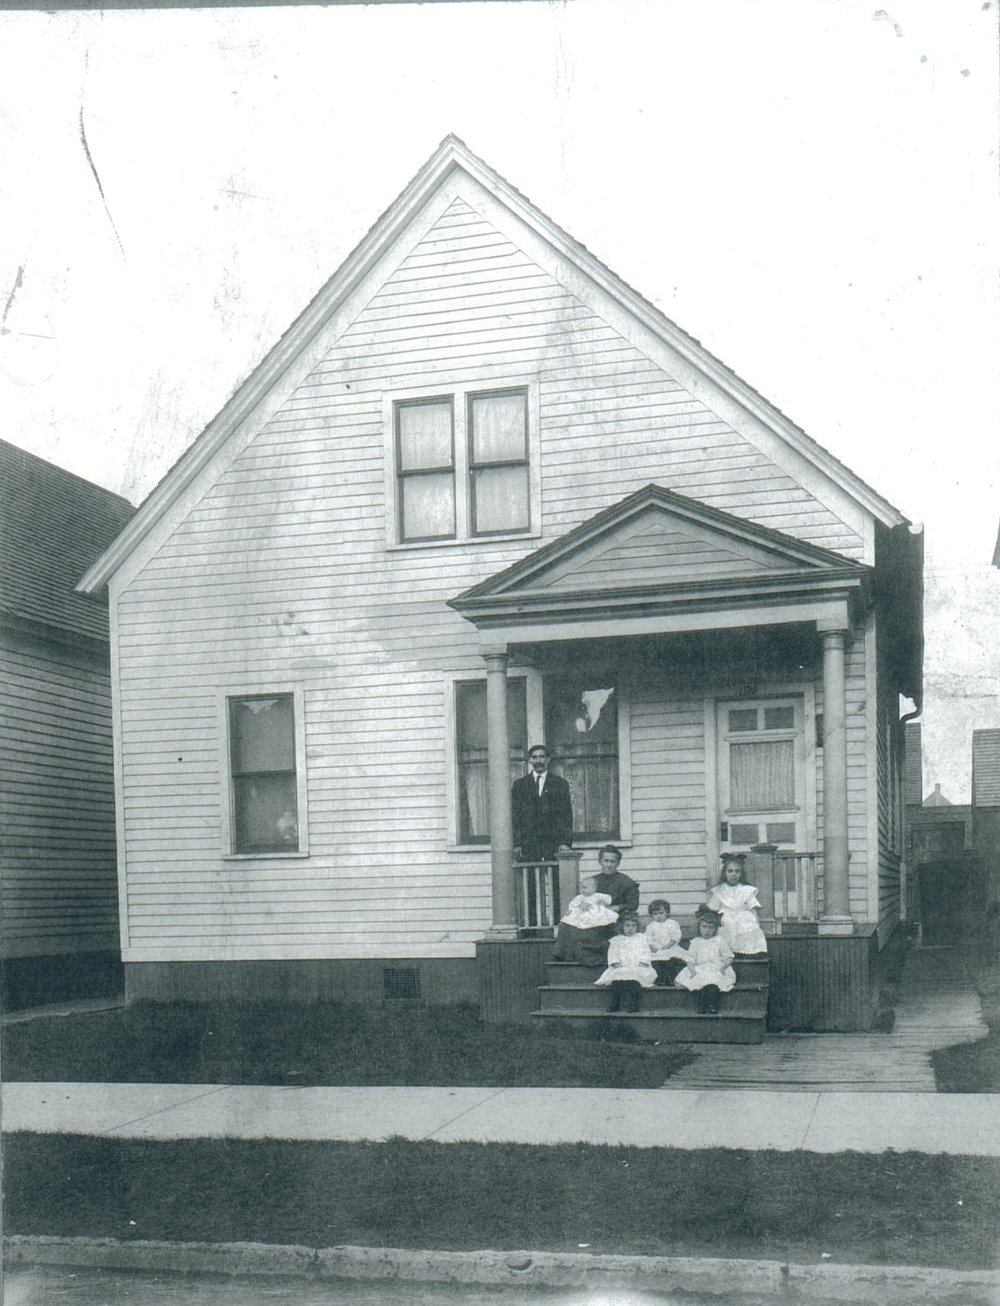 Pawlowski Family on Dubois St. in Detroit, MI - around 1910-1915